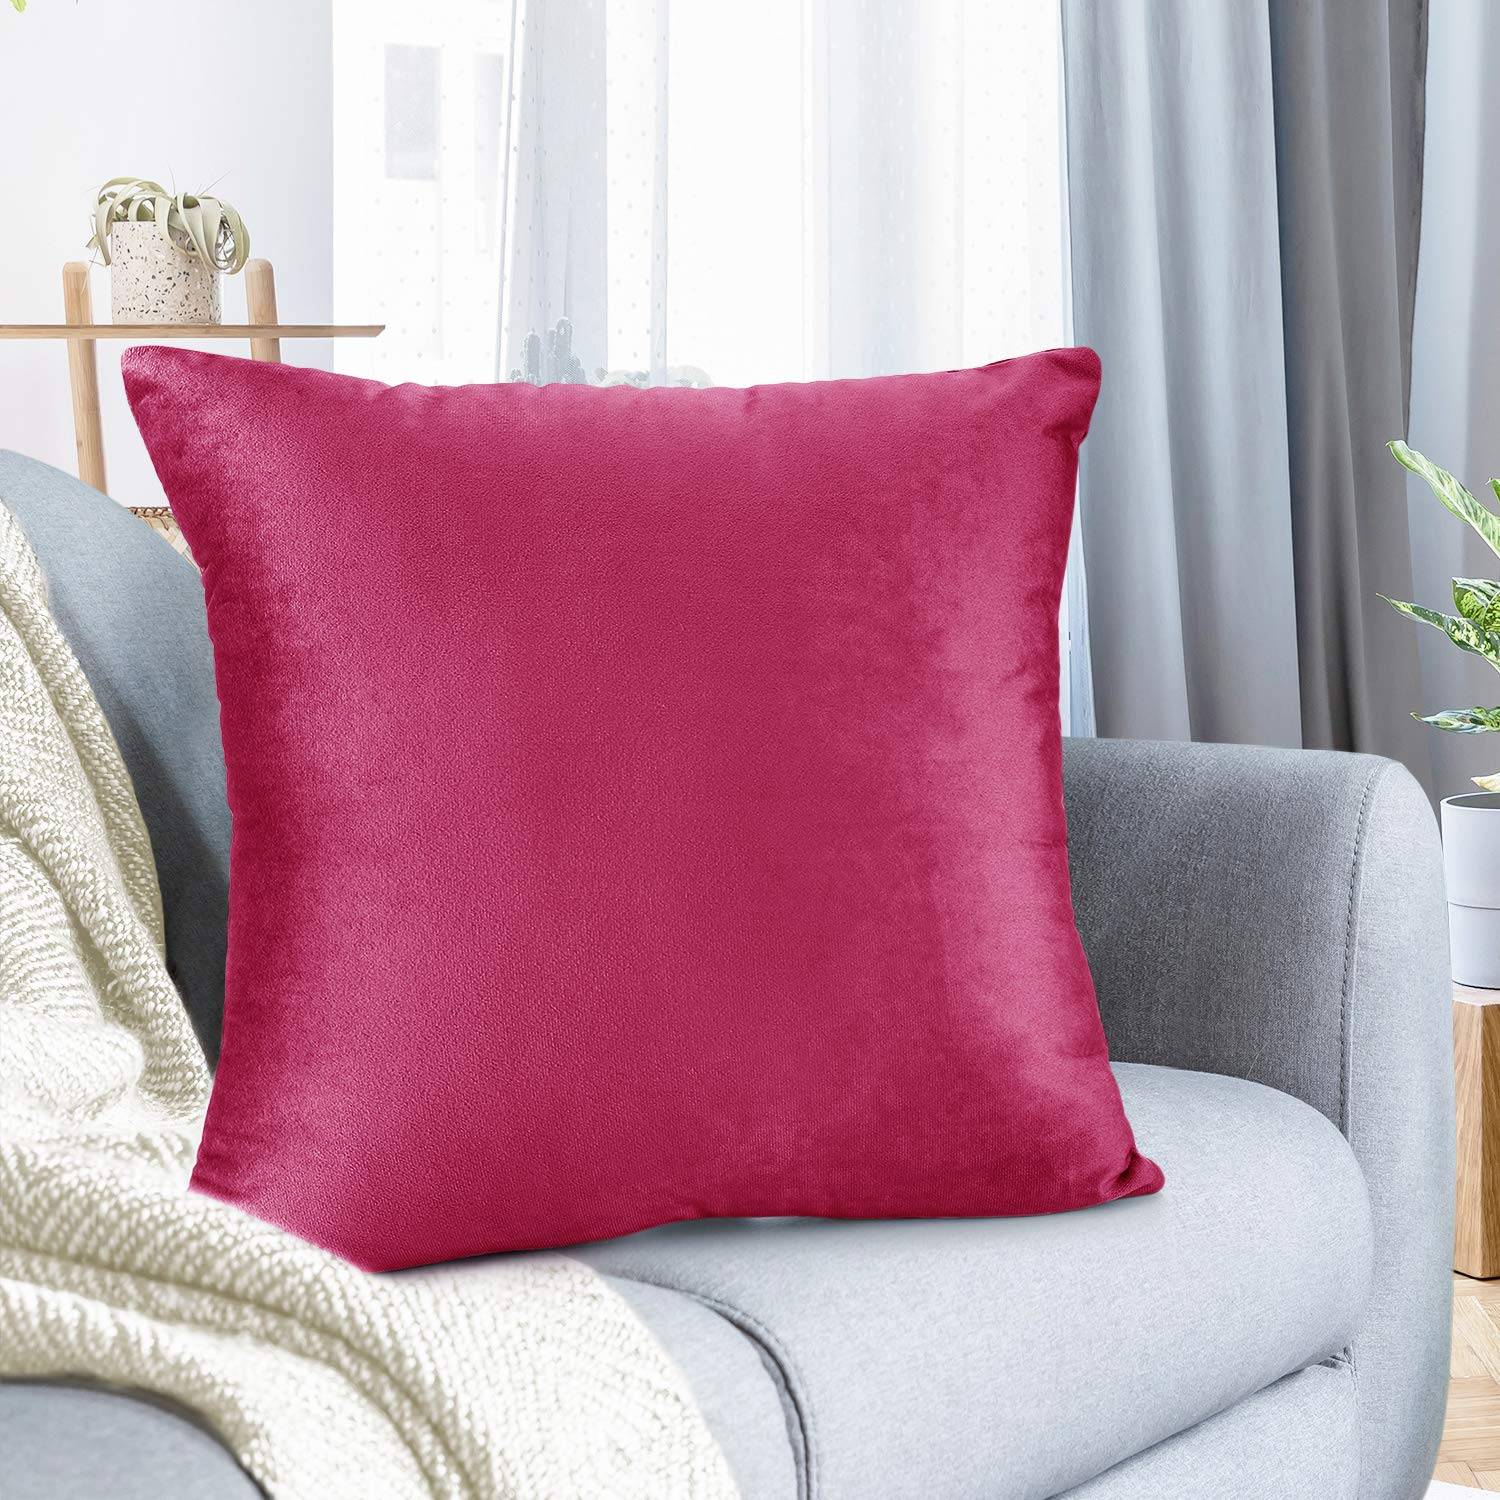 """Nestl Bedding Throw Pillow Cover 26"""" x 26"""" Soft Square Decorative Throw Pillow Covers Cozy Velvet Cushion Case for Sofa Couch Bedroom - Hot Pink"""